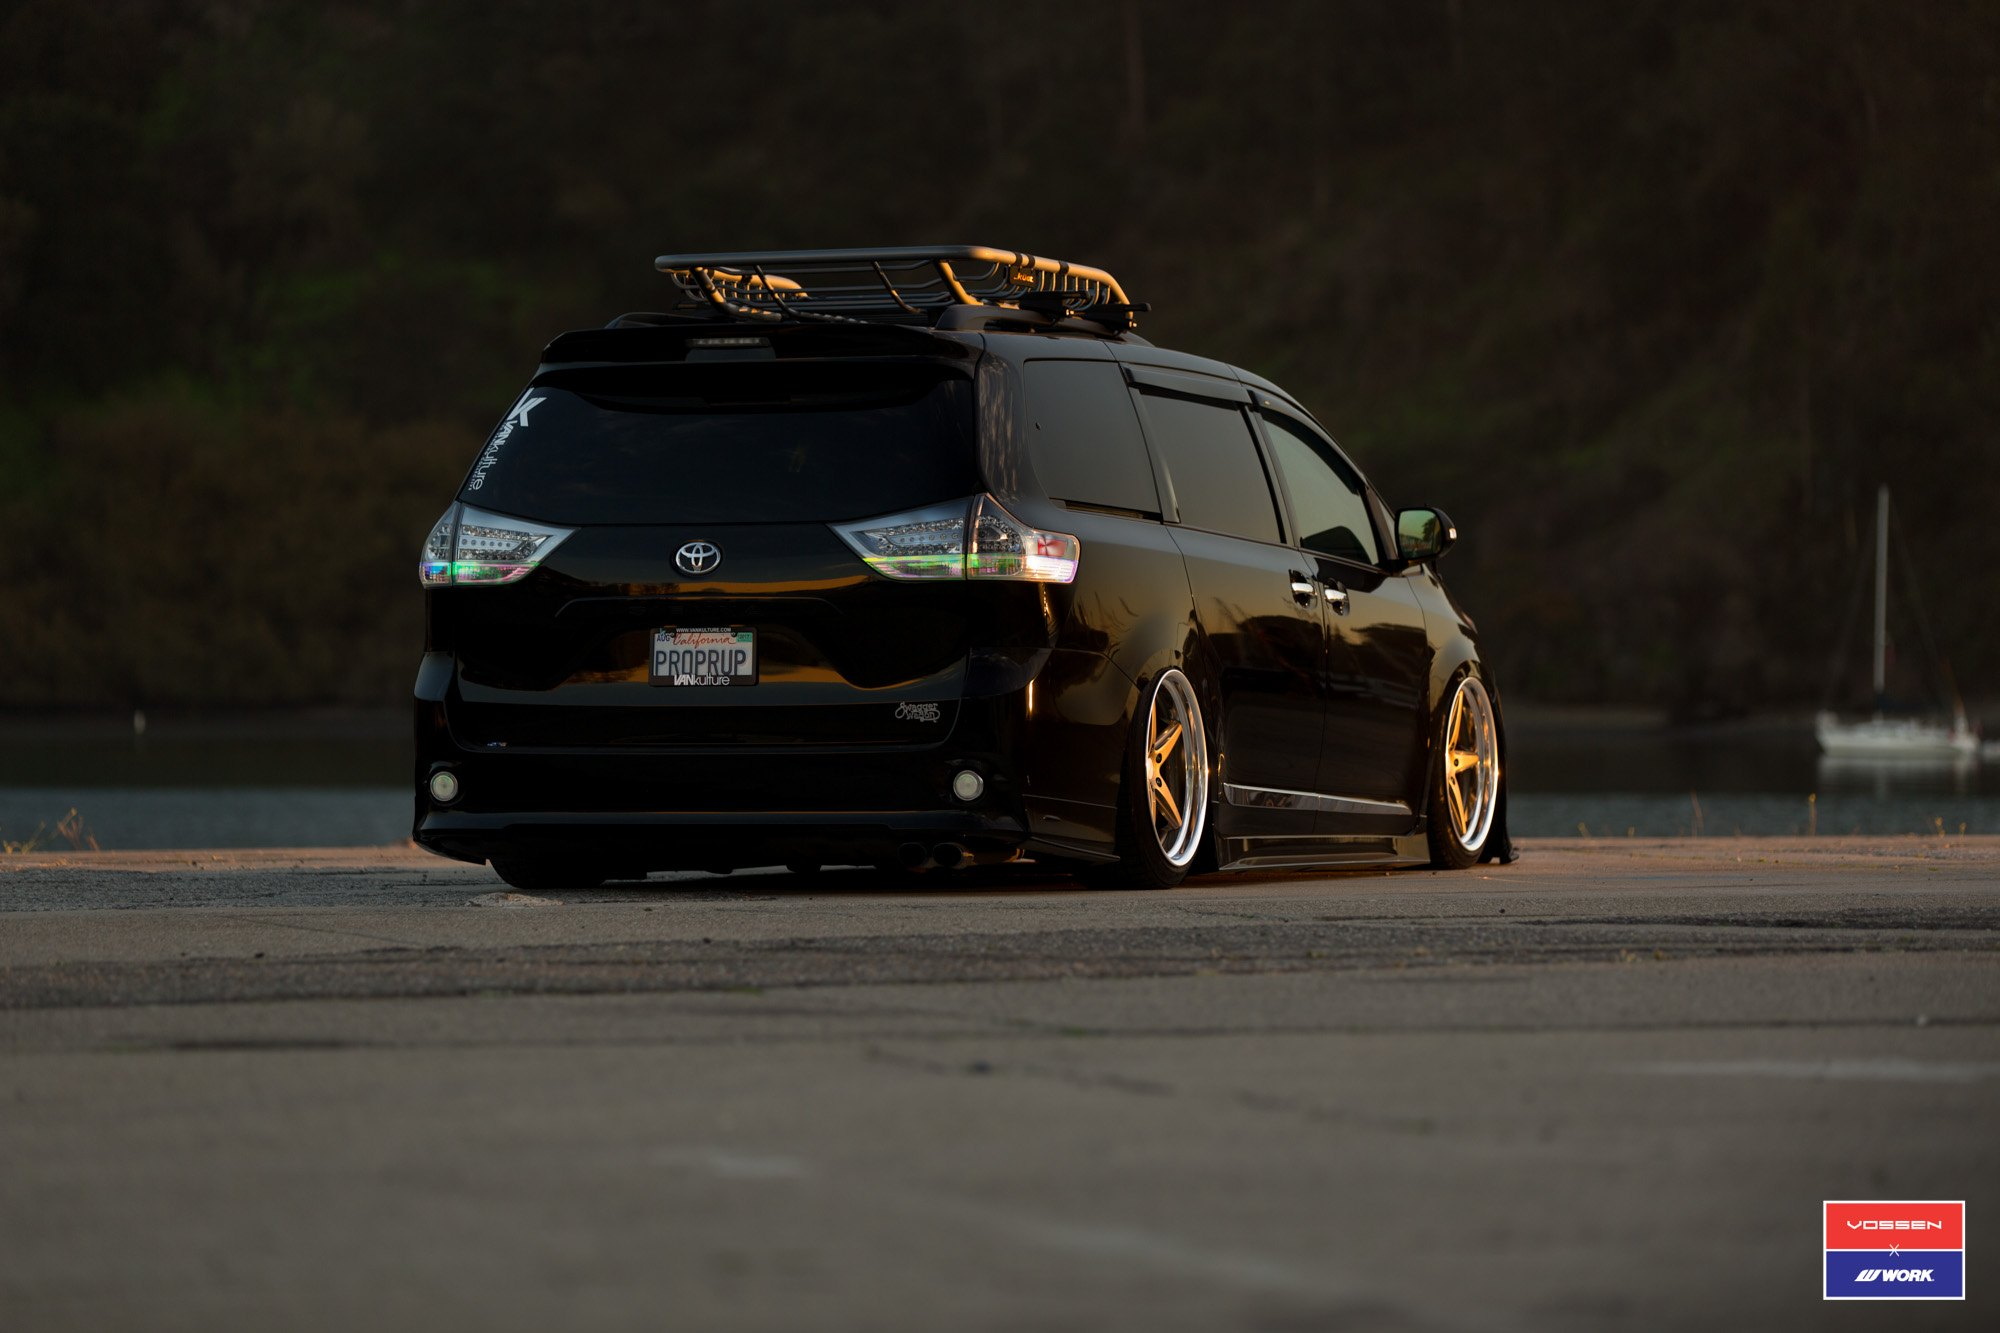 stanced out black toyota sienna and fitted with custom body kit carid com gallery stanced out black toyota sienna and